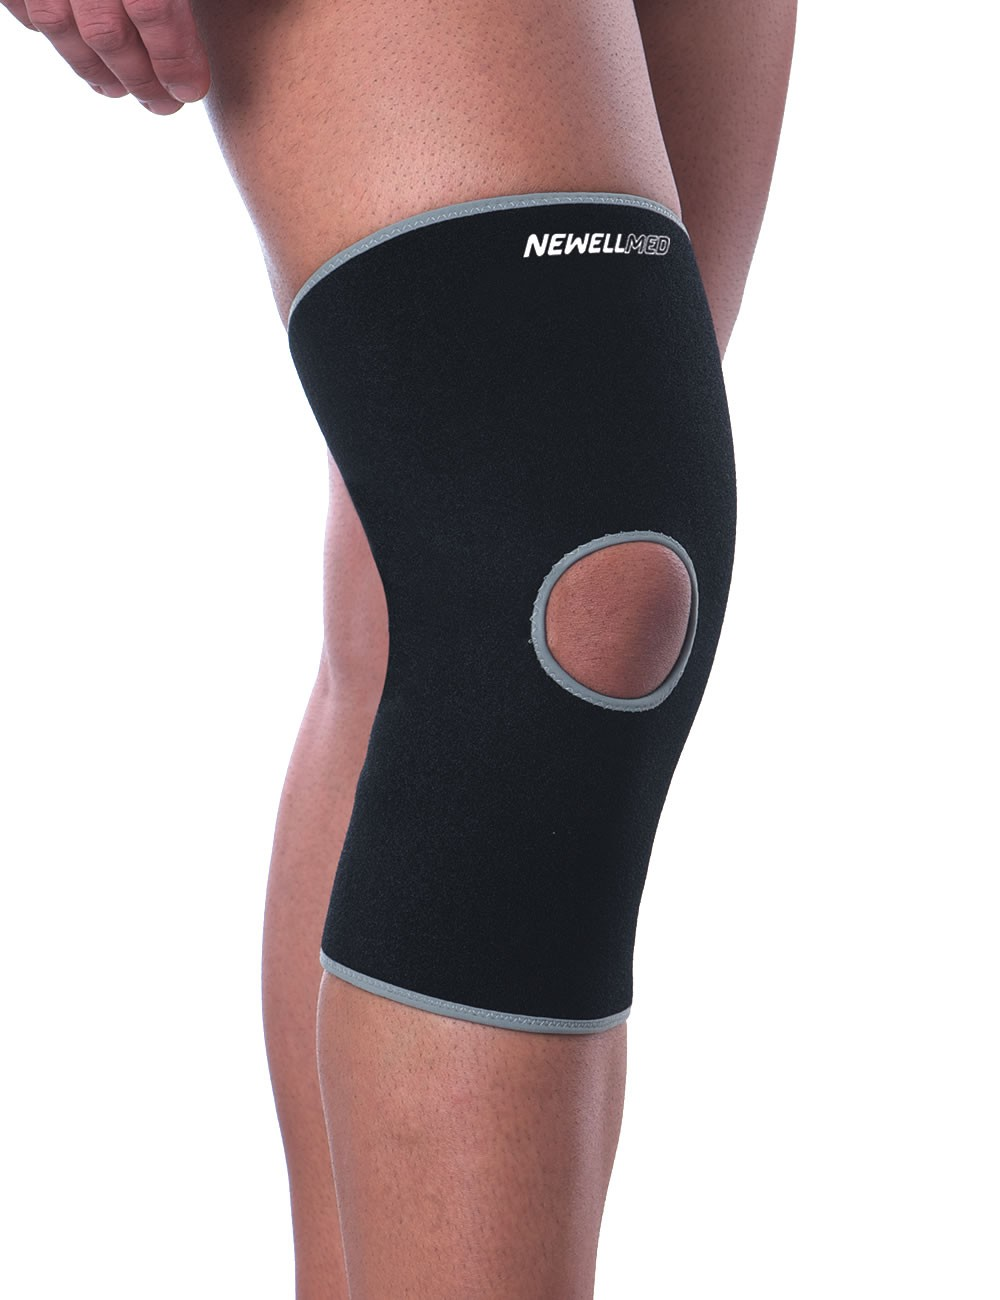 PK21 - Simple knee brace with hole